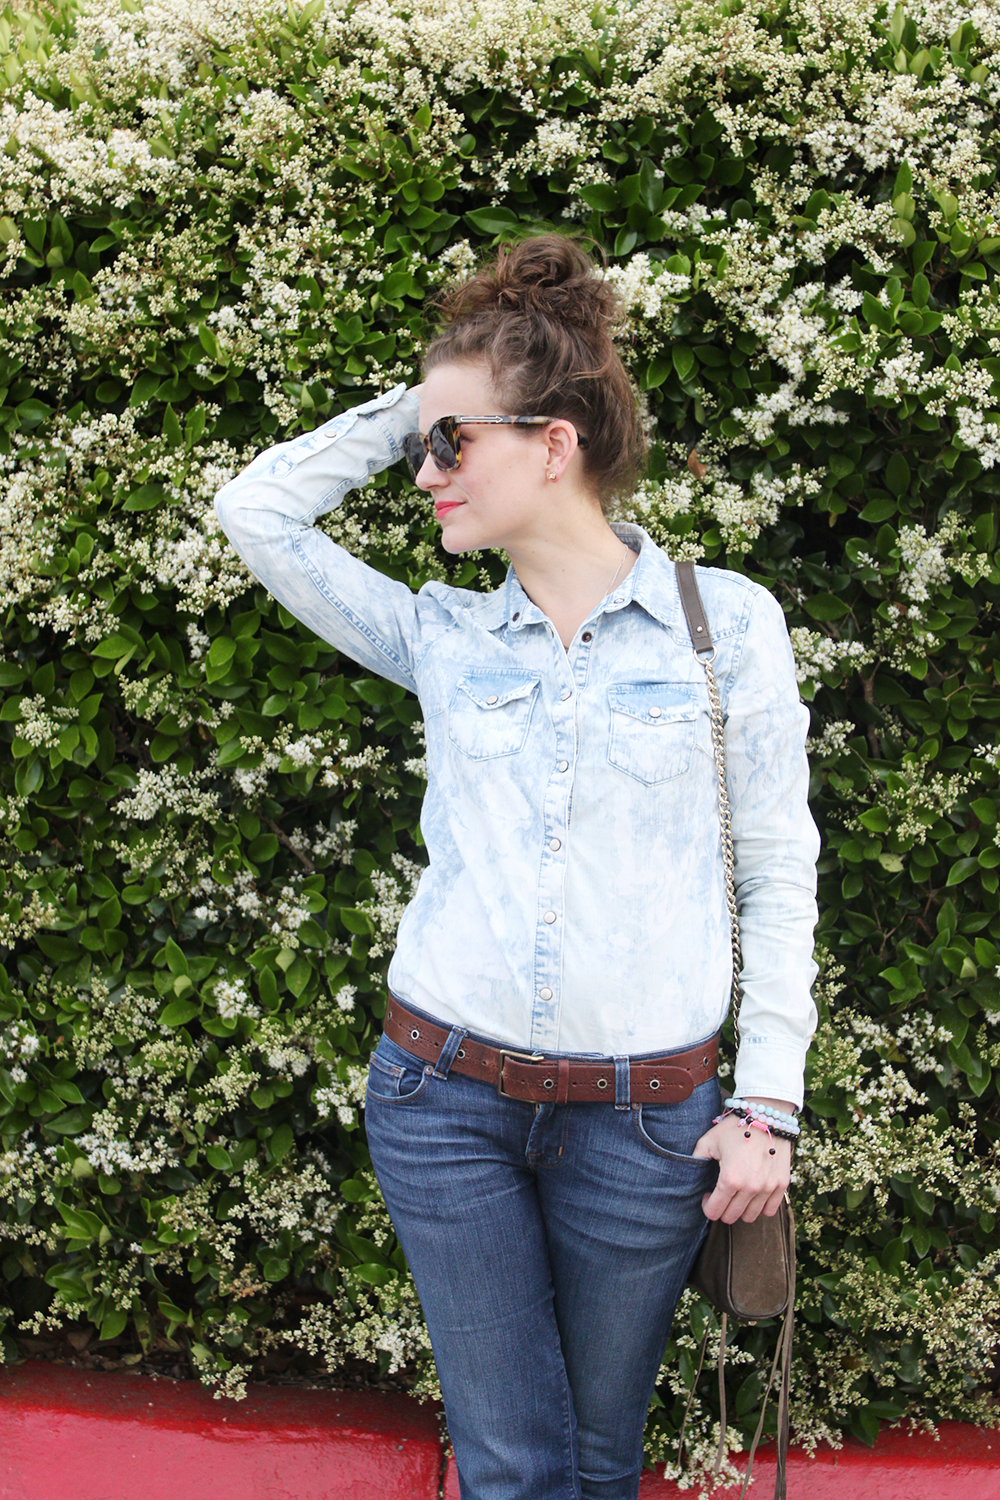 back to basics with denim on denim - undeniable style